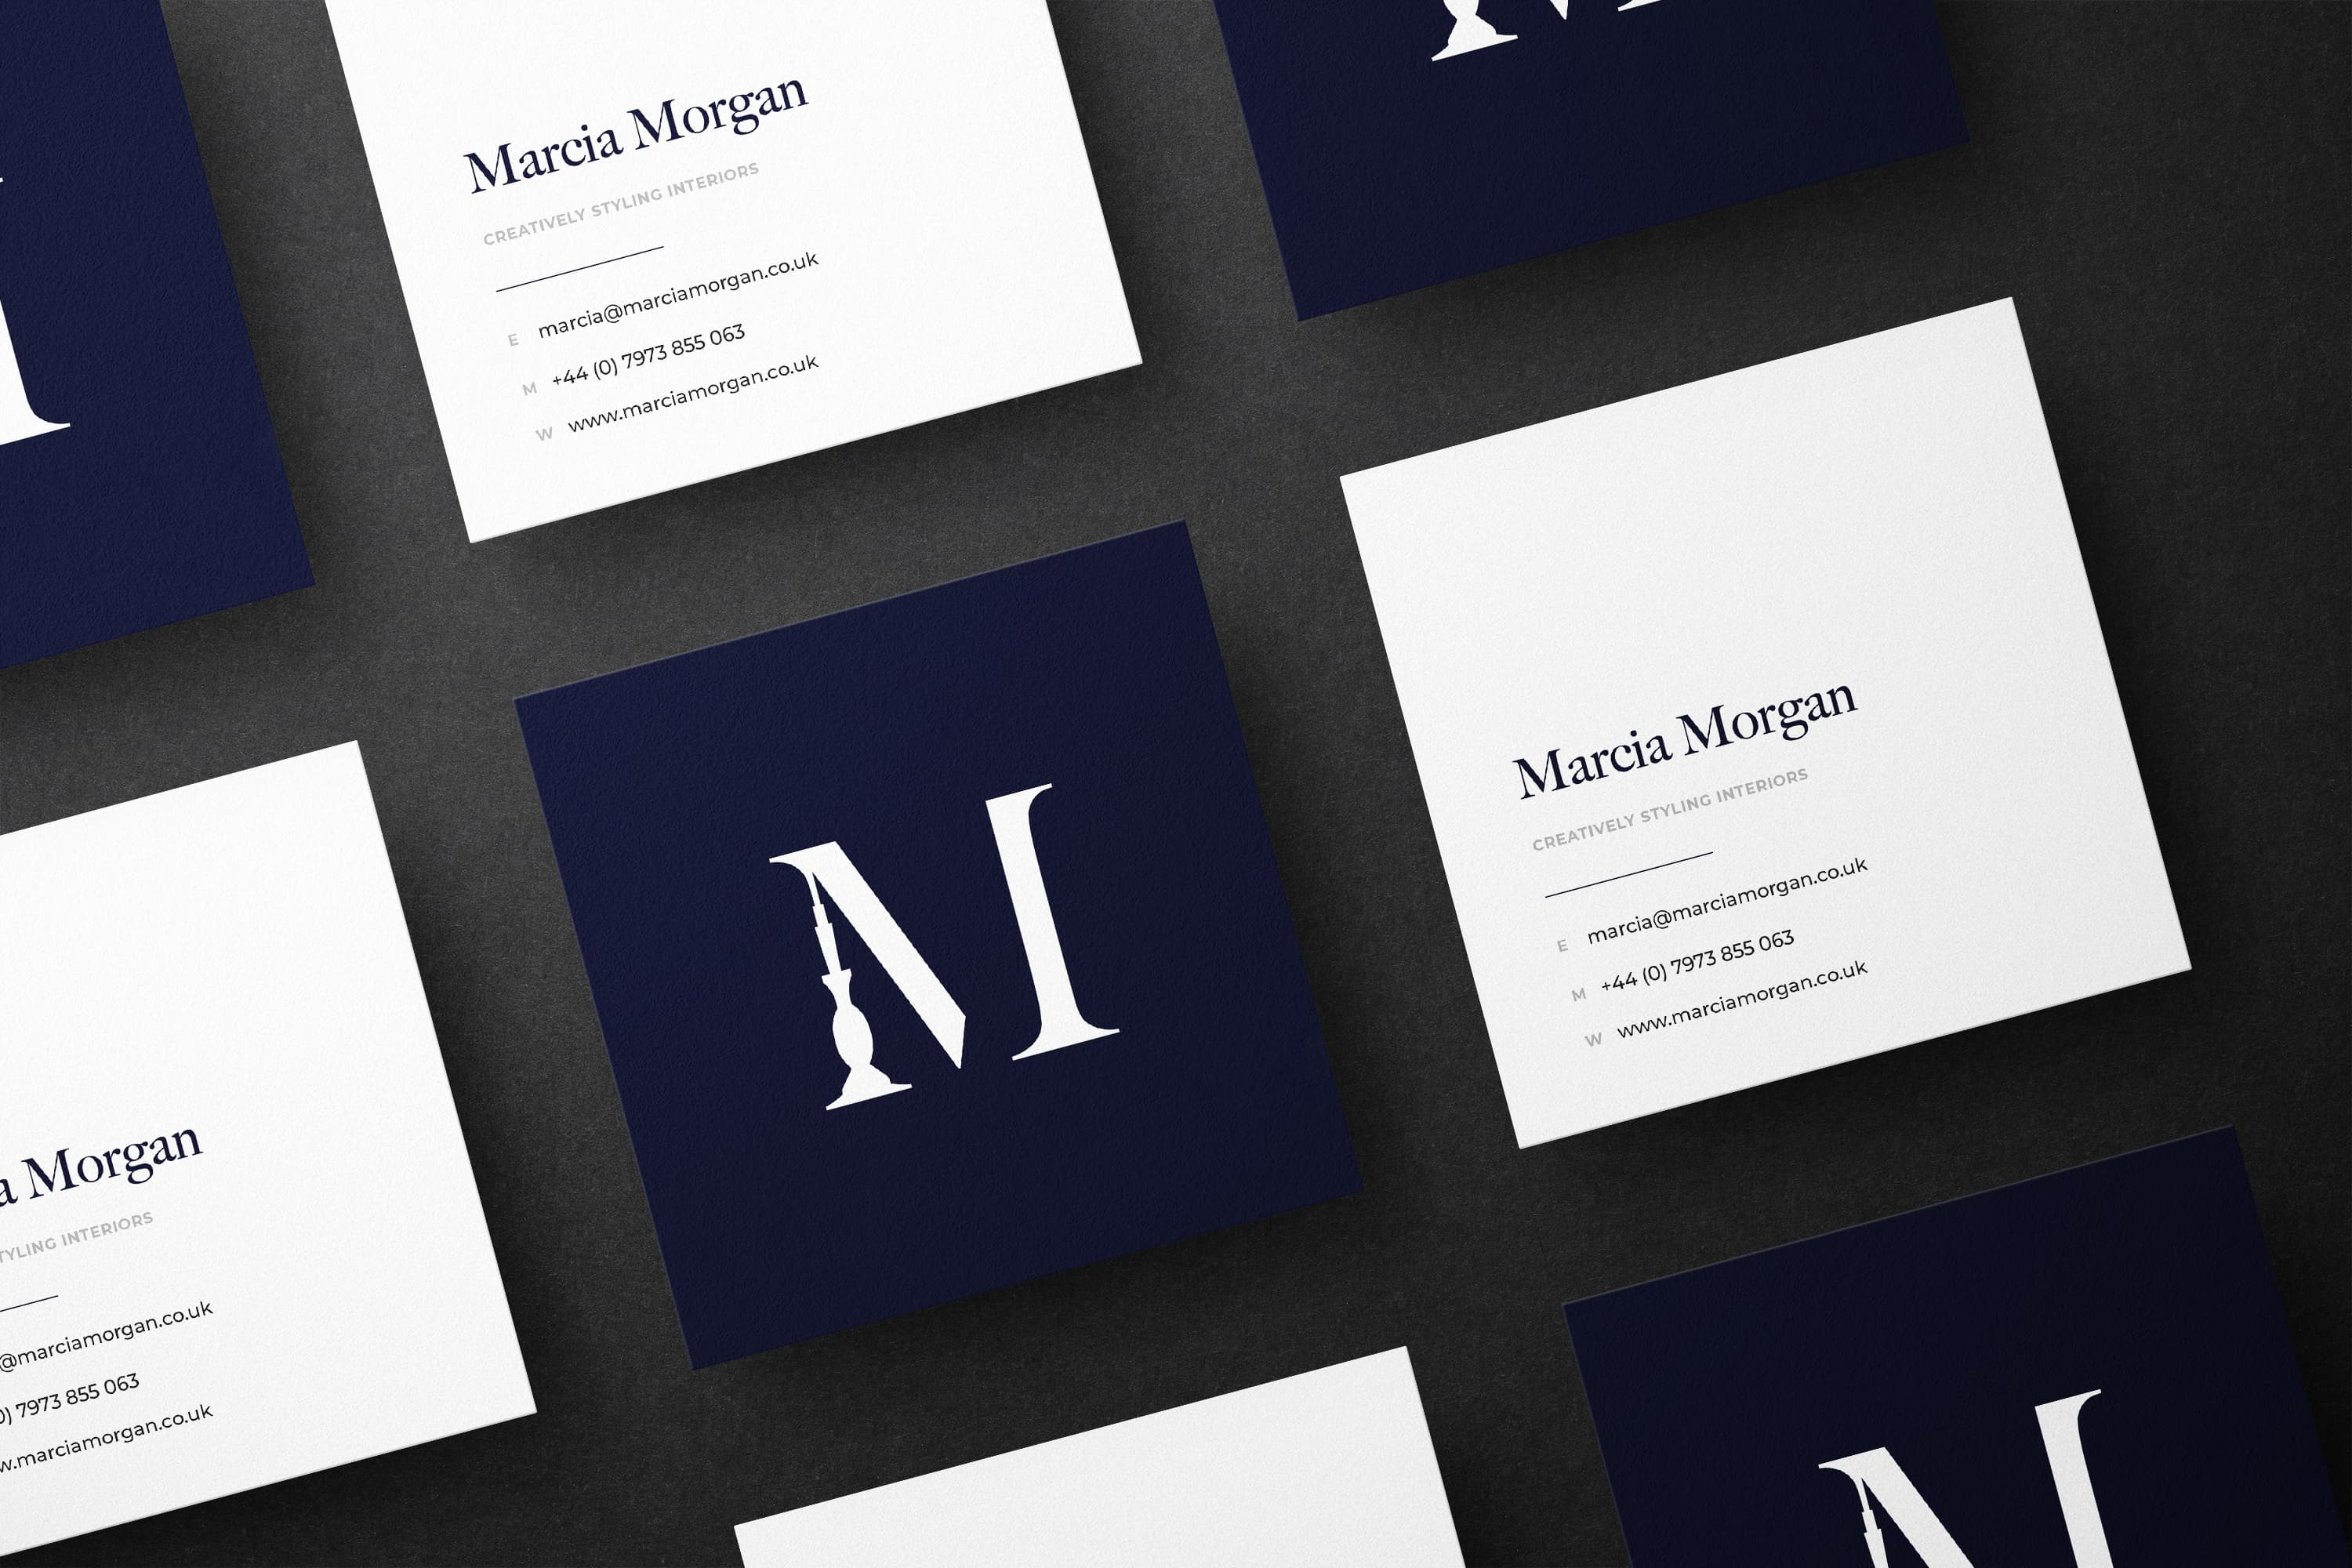 A row of Marcia Morgan business cards